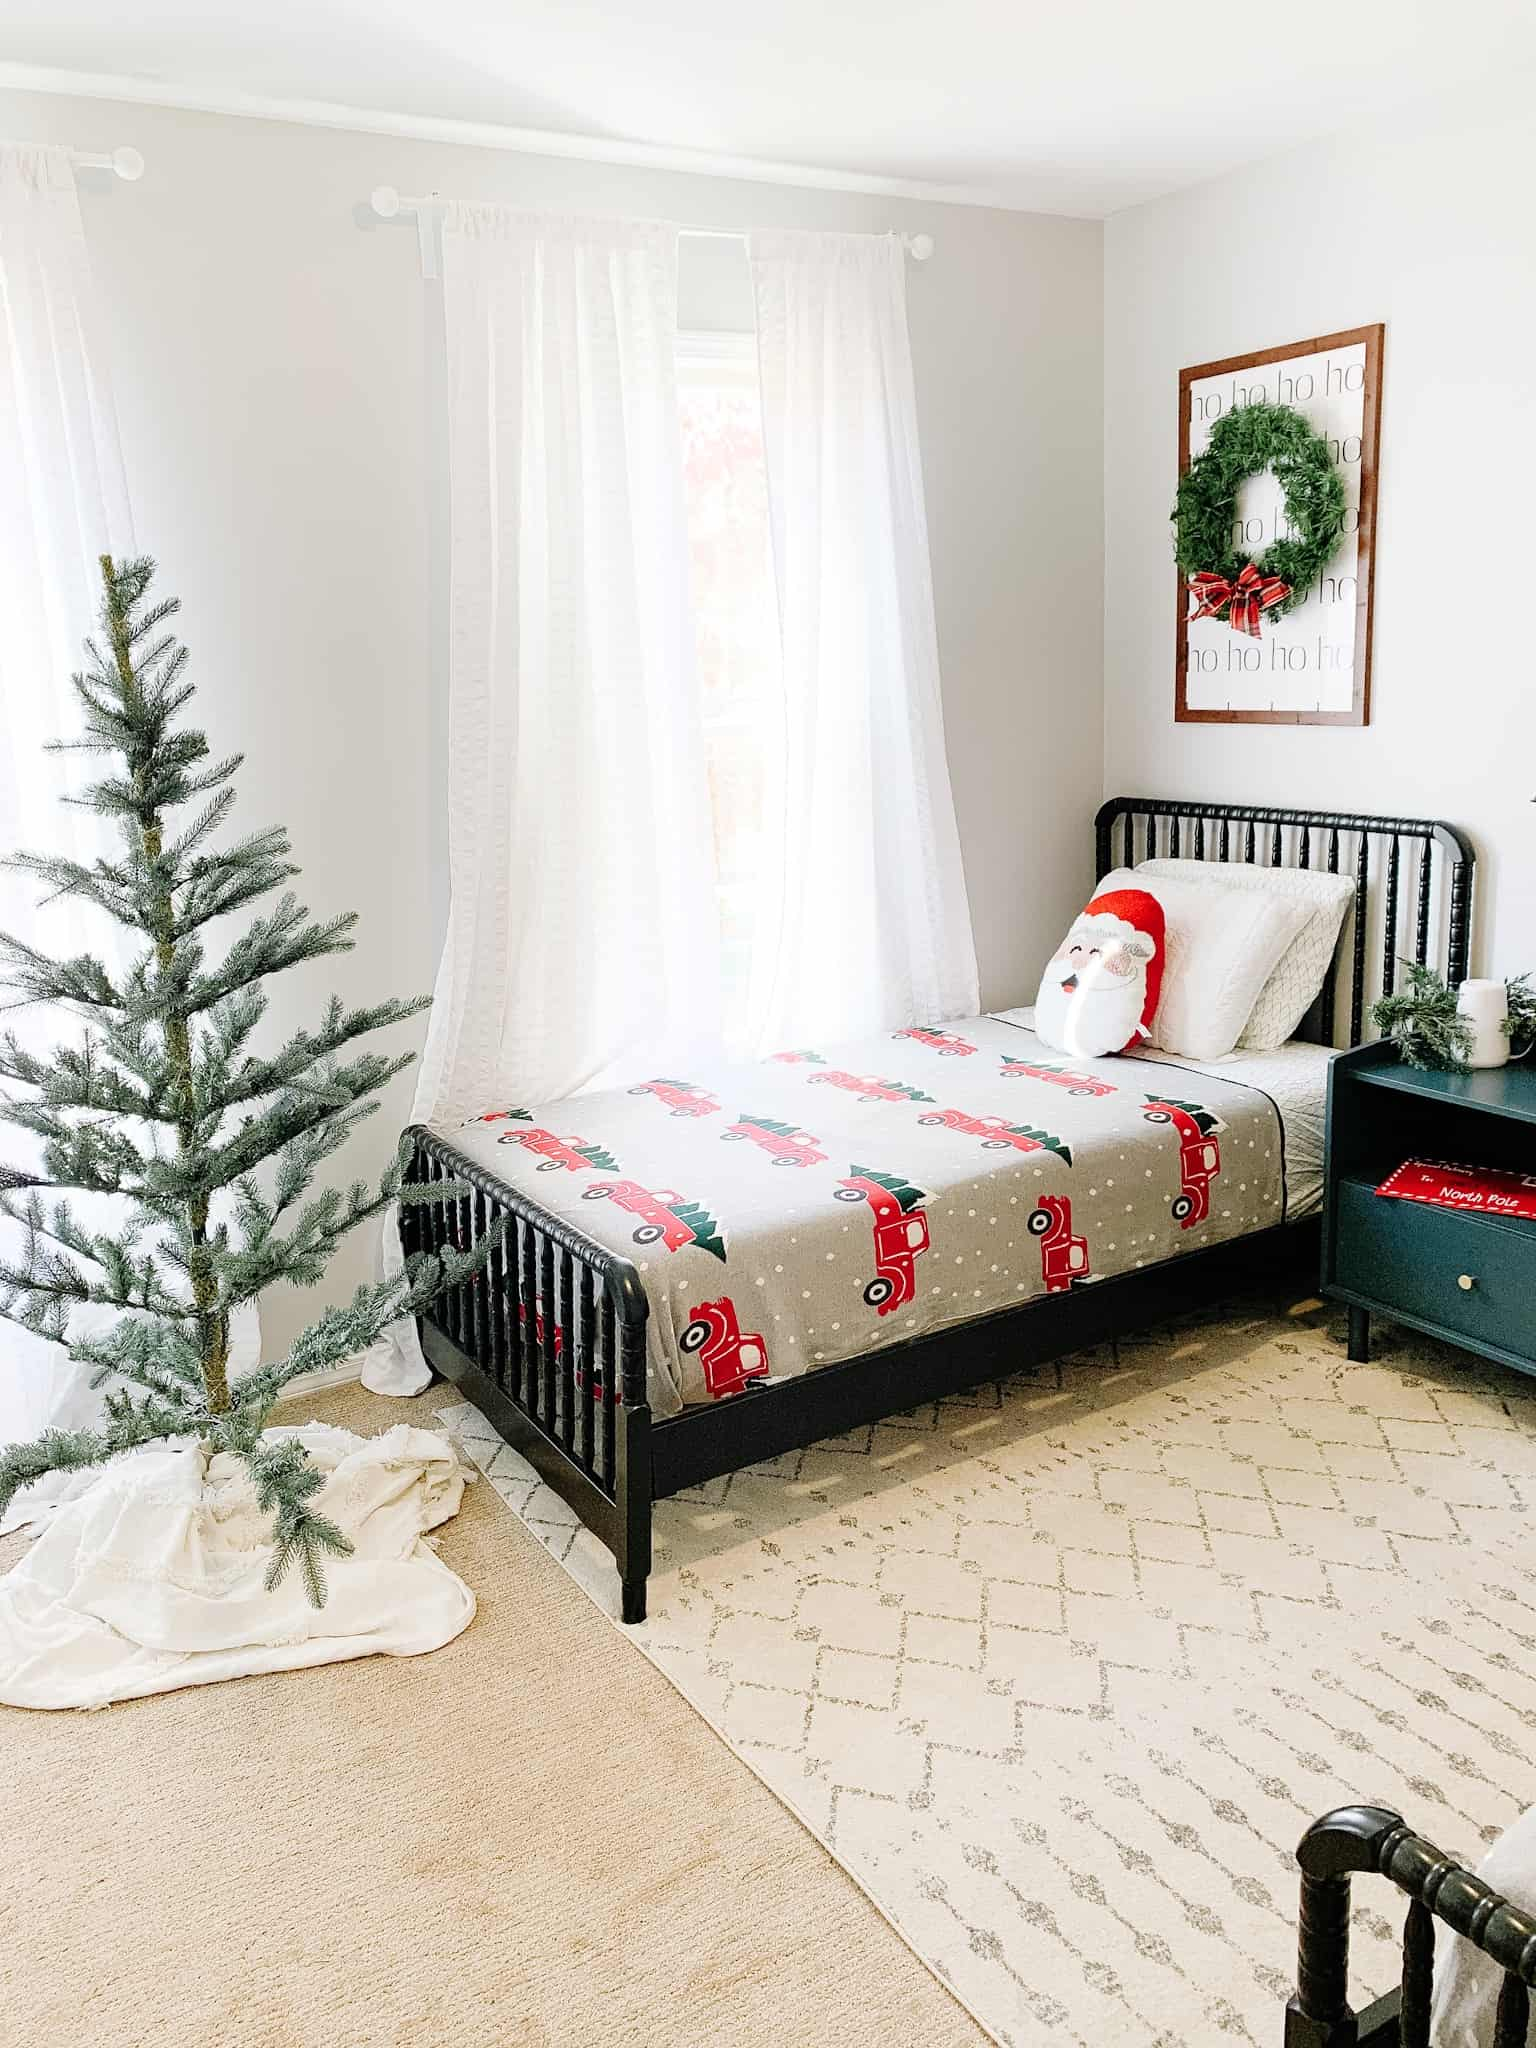 Boys room for Christmas with tree and Christmas Bedding